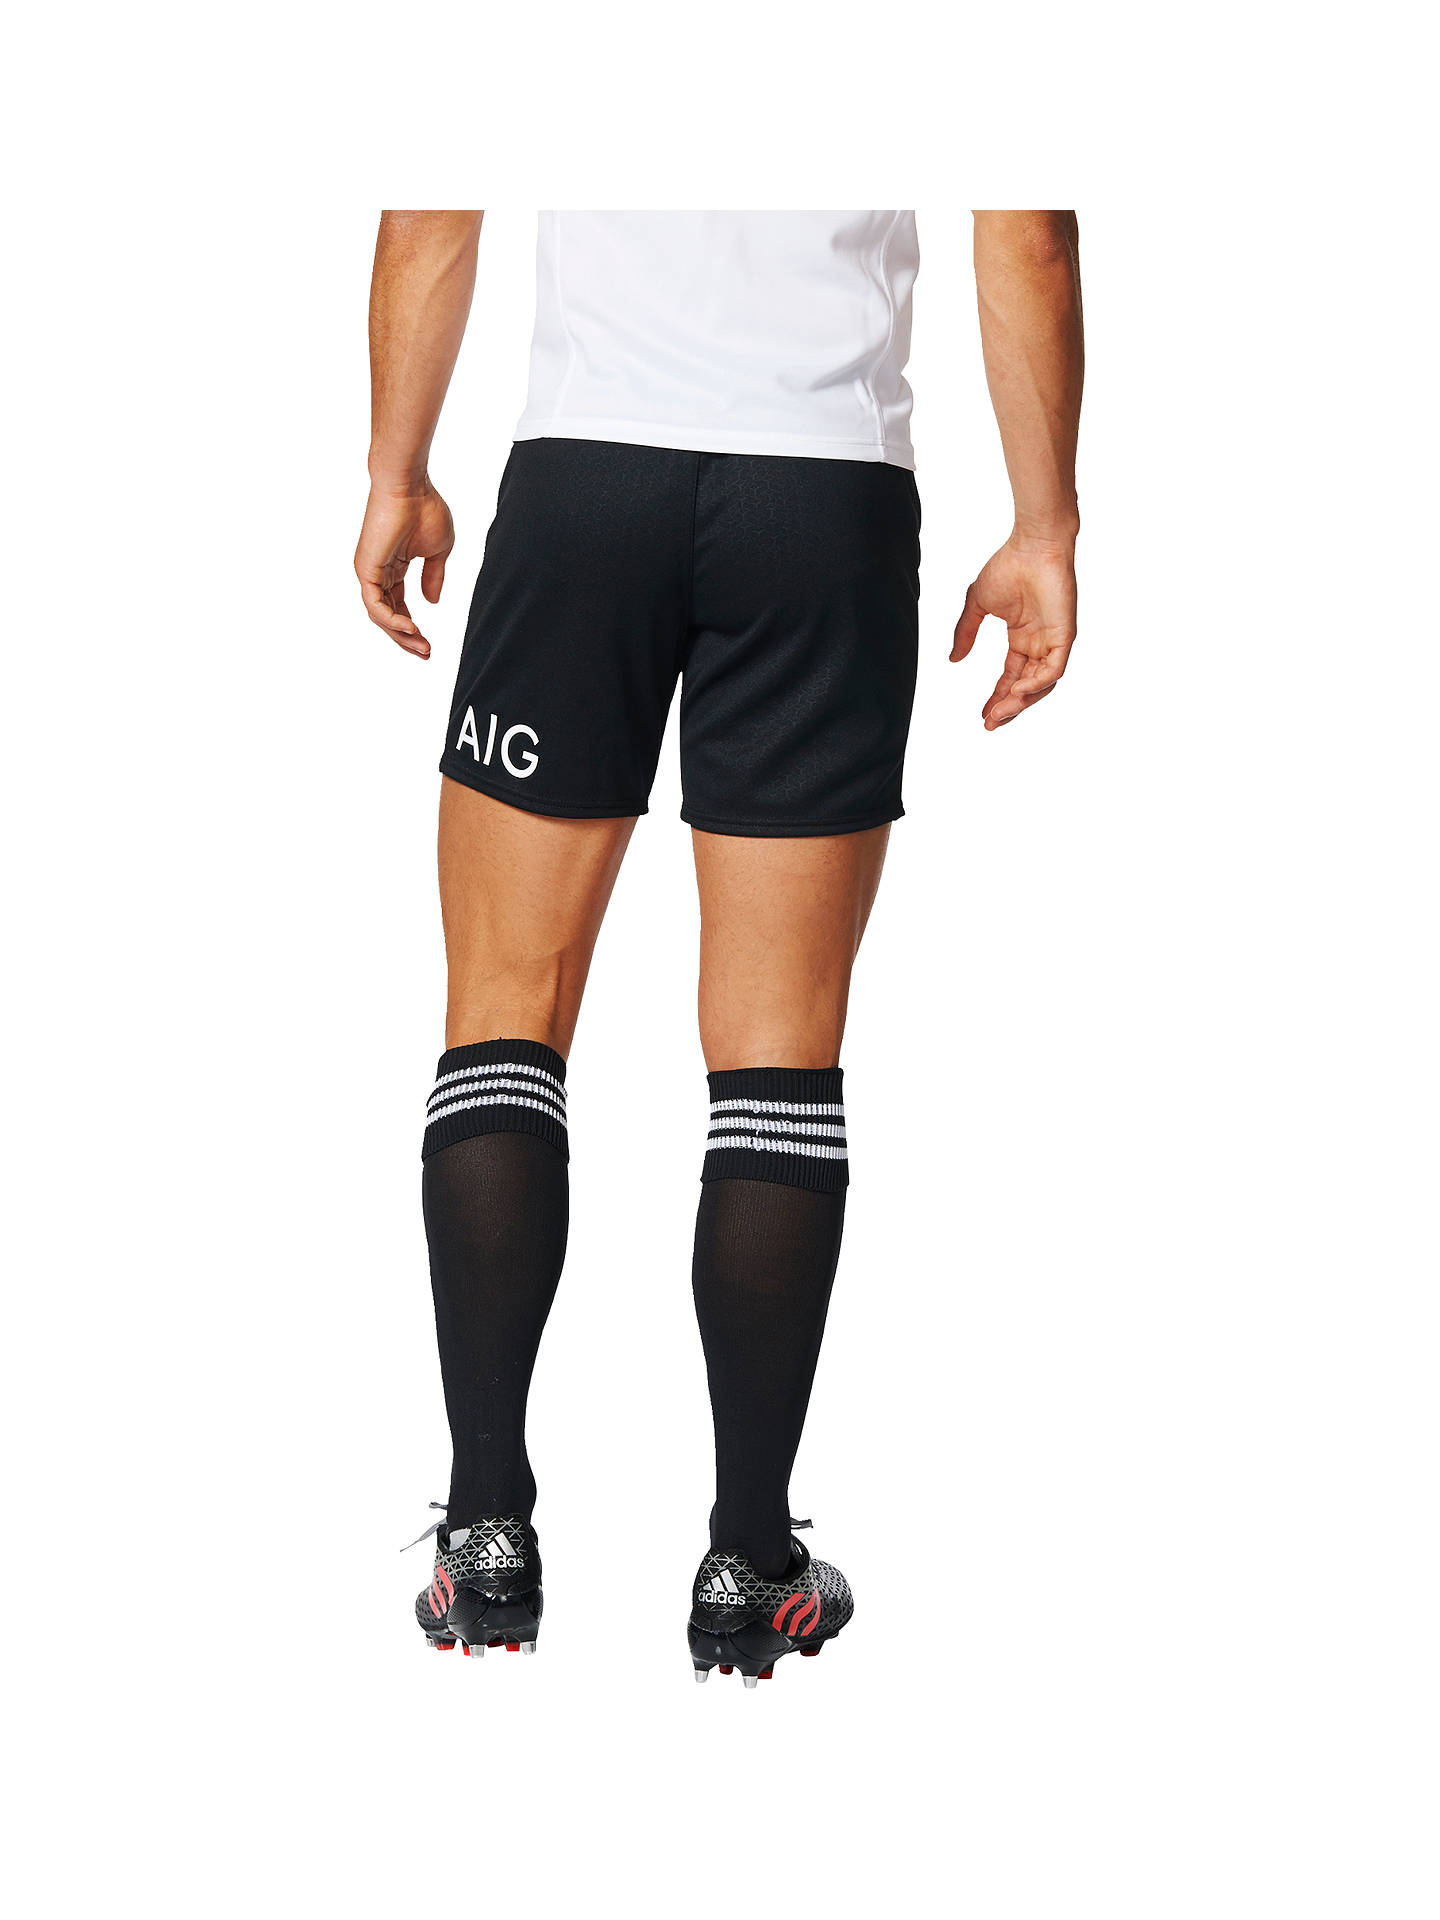 a4be5087dc3 ... Buy Adidas New Zealand All Blacks 2017 Home Rugby Shorts, Black, S  Online at ...